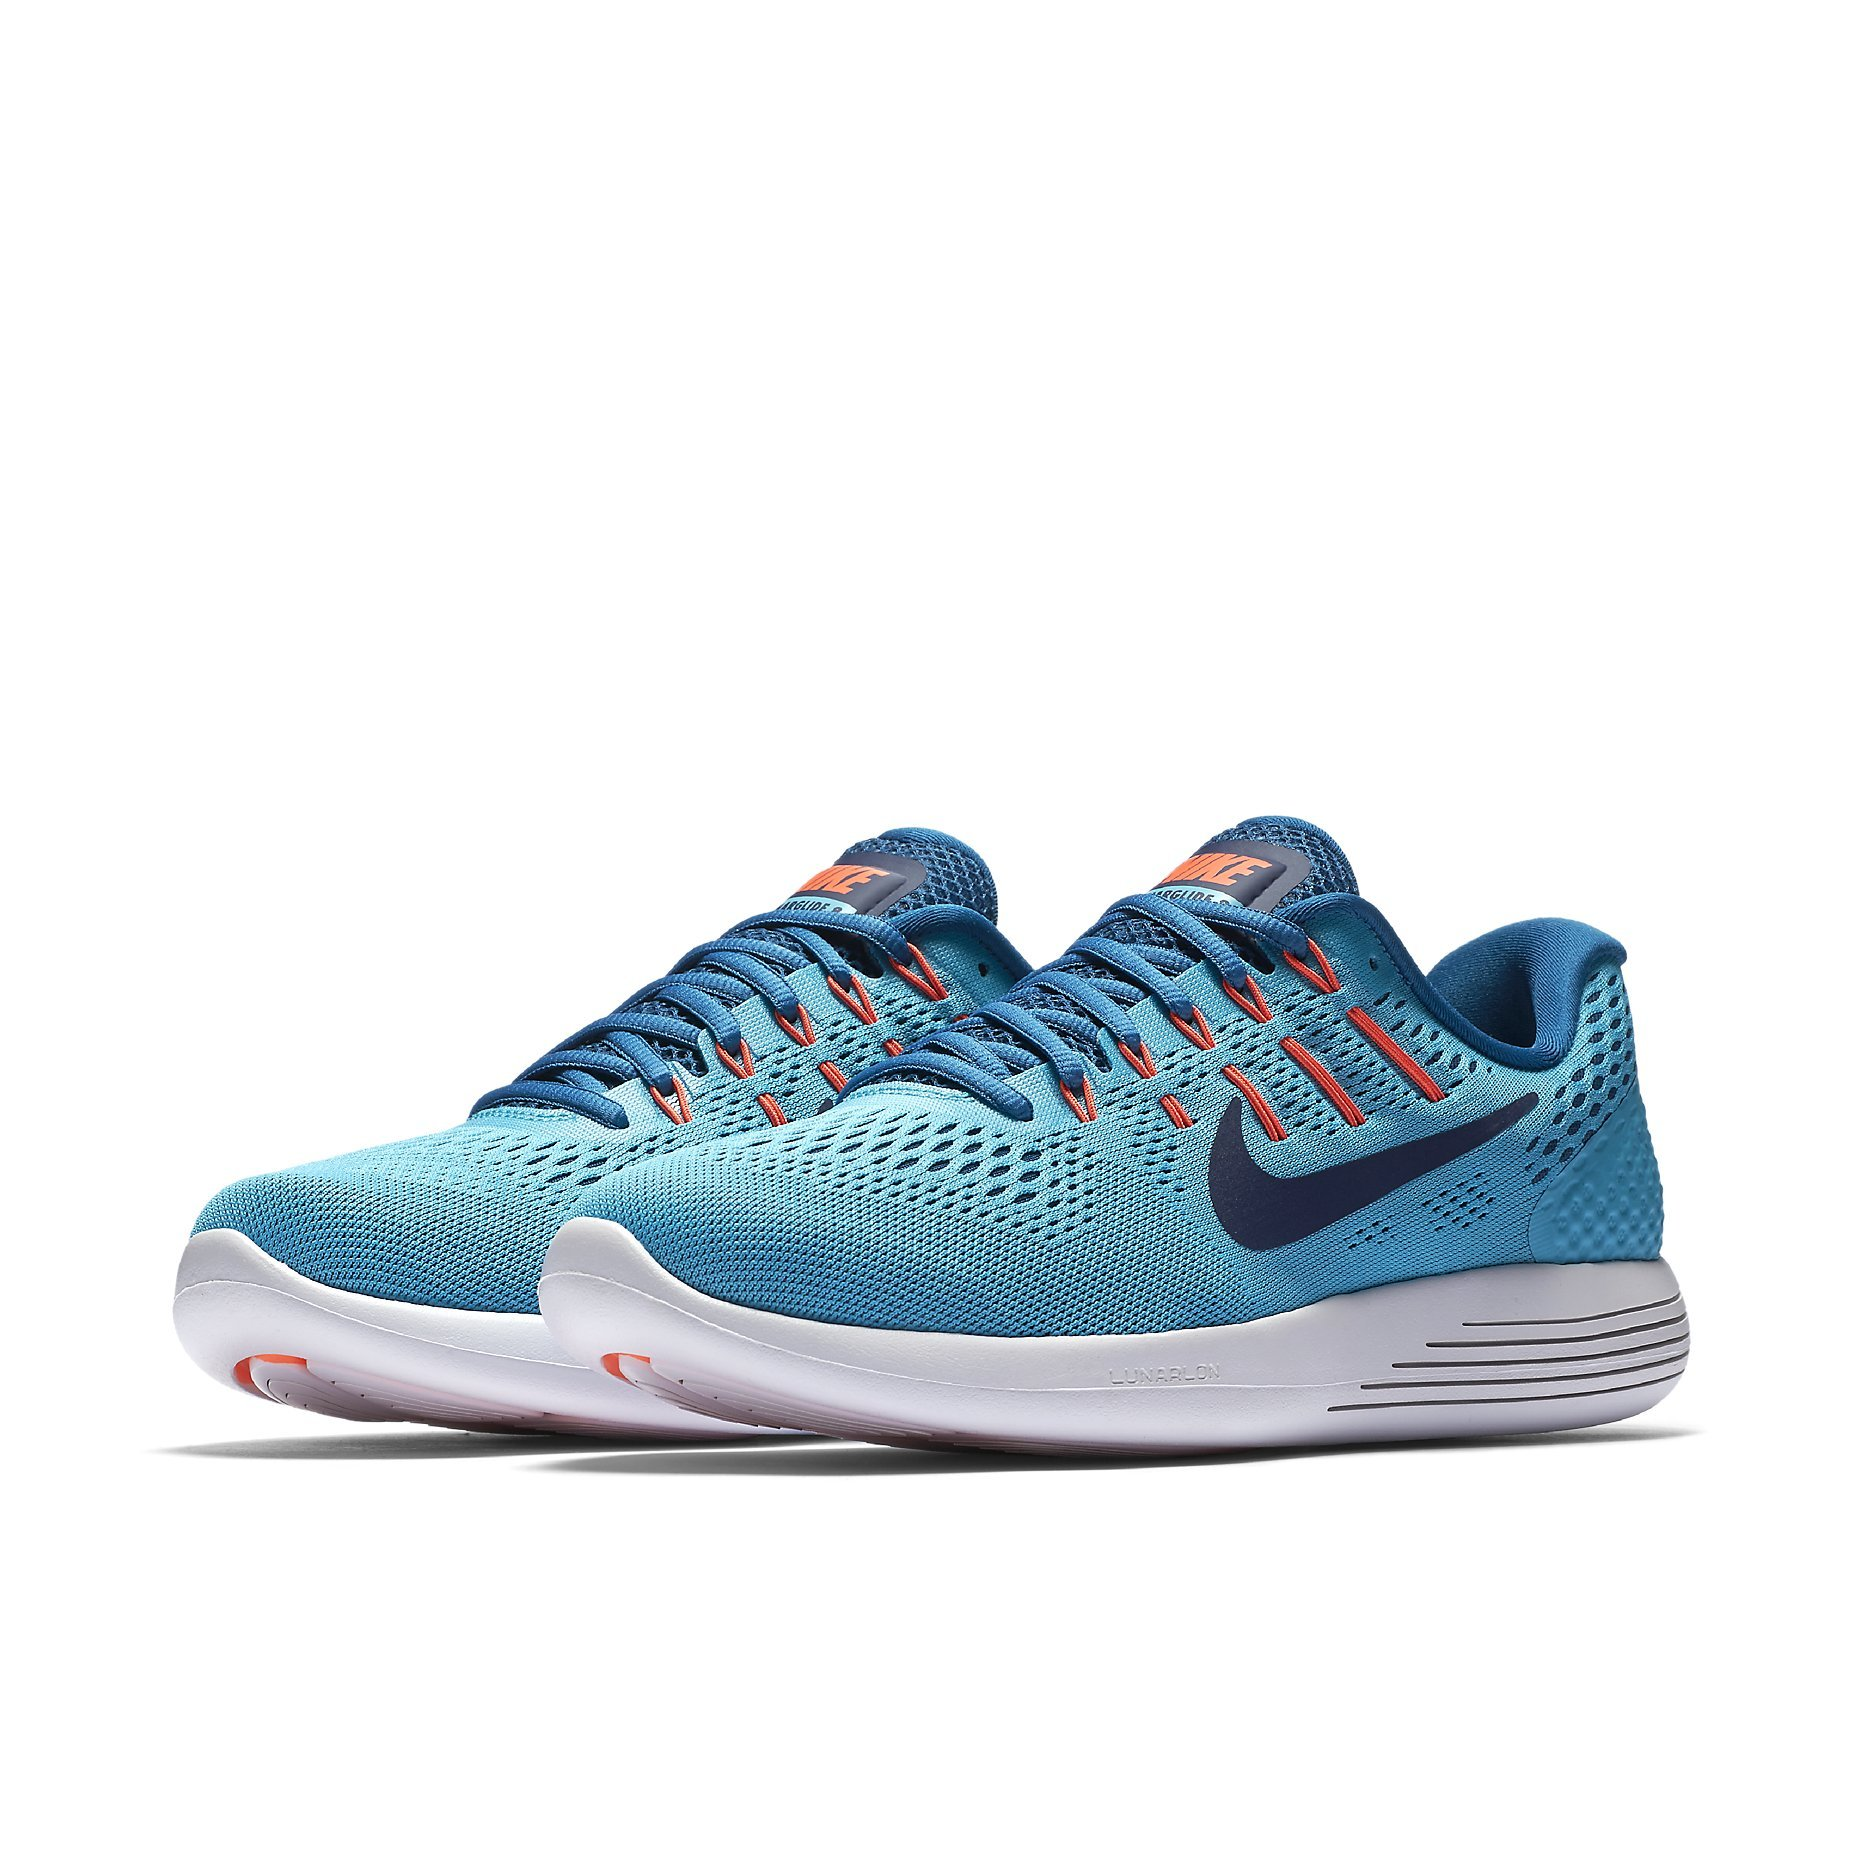 a78a90cf96295 Nike Air Zoom Pegasus 34 Running Shoes